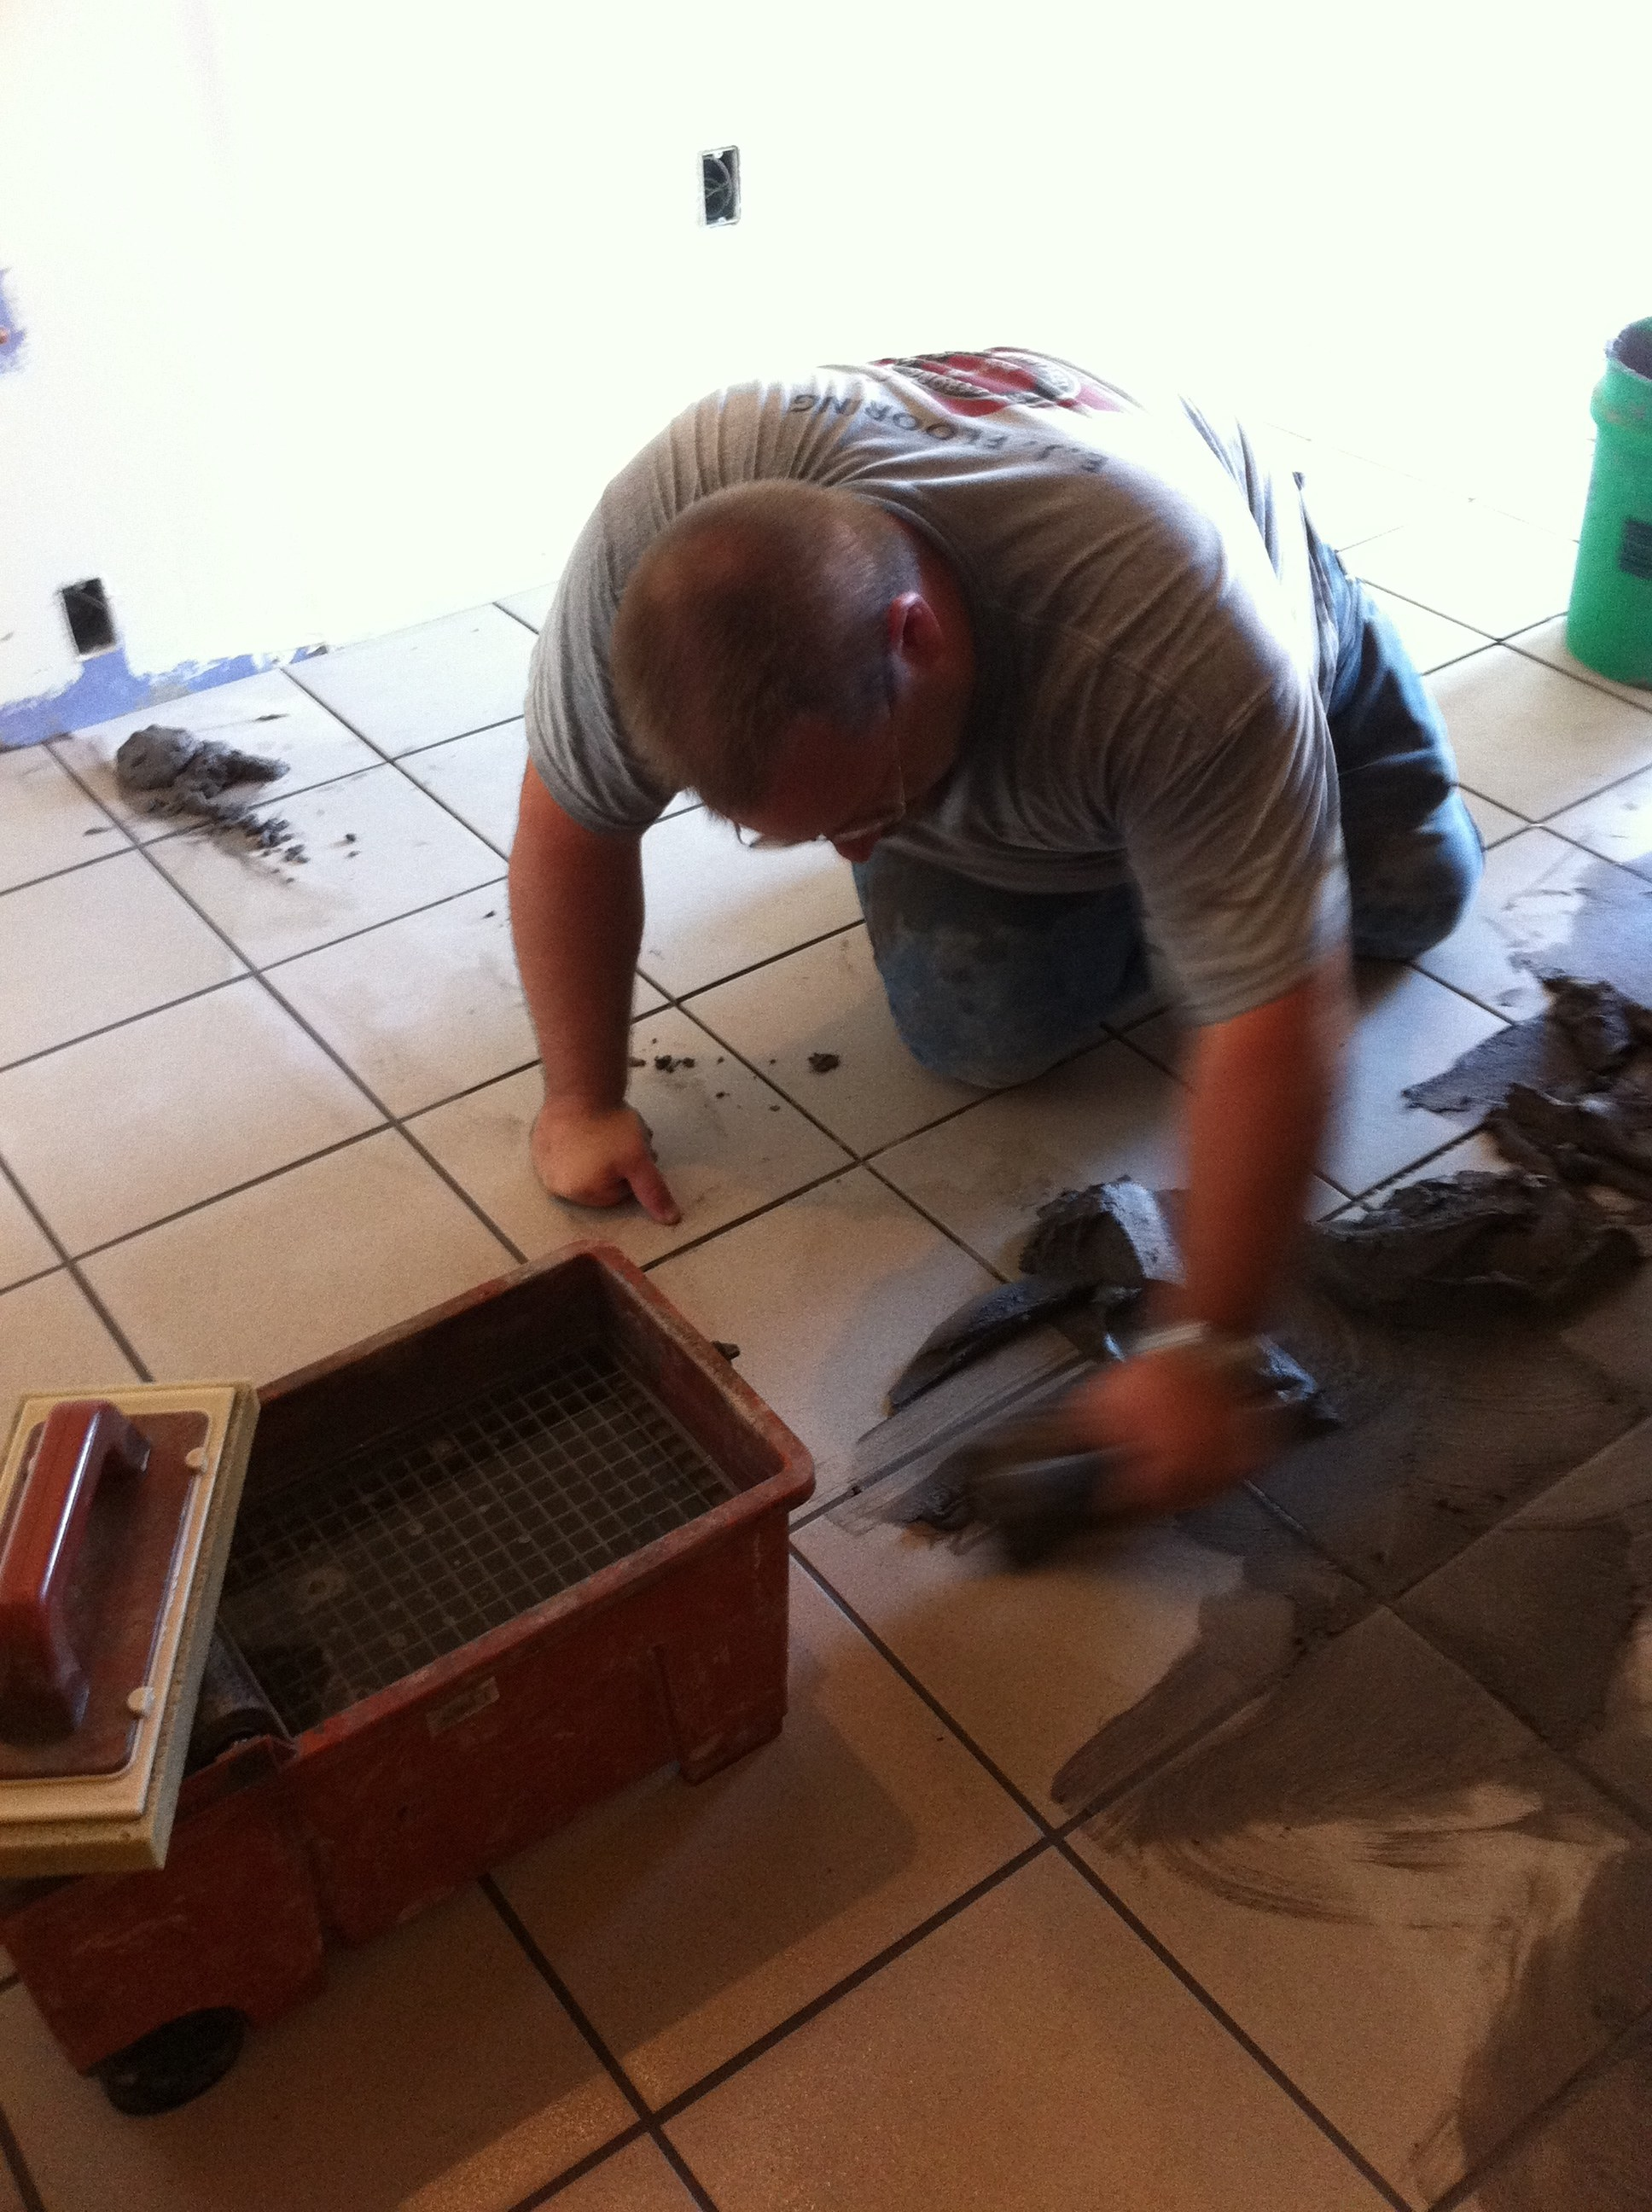 Eric Blumer grouting more tile